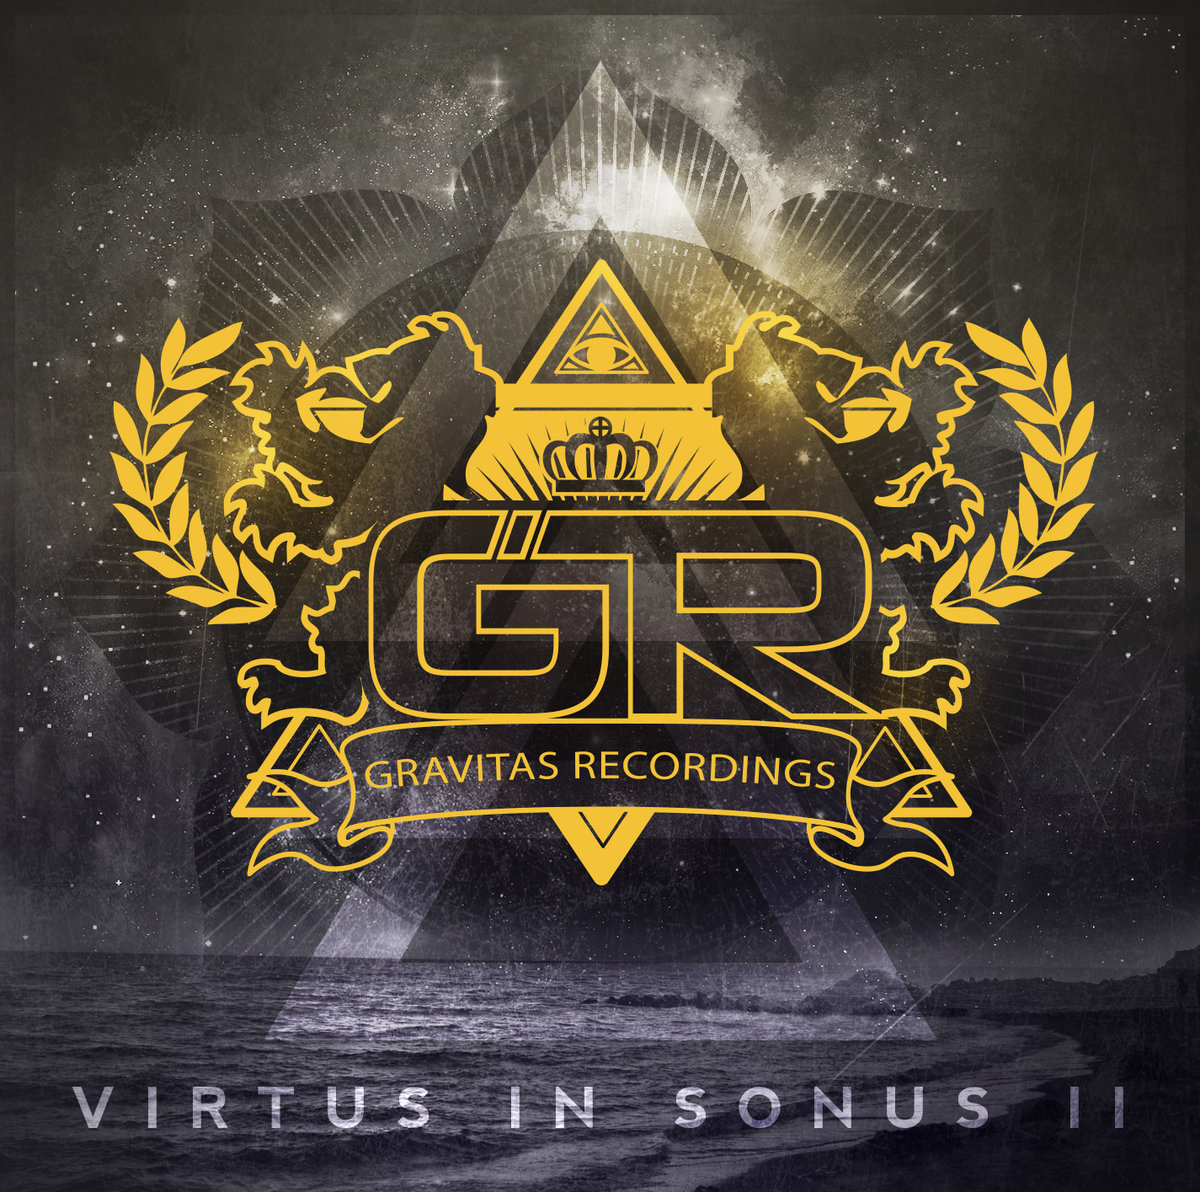 Metranohm - CloserToGod @ 'Virtus In Sonus II' album (Austin)